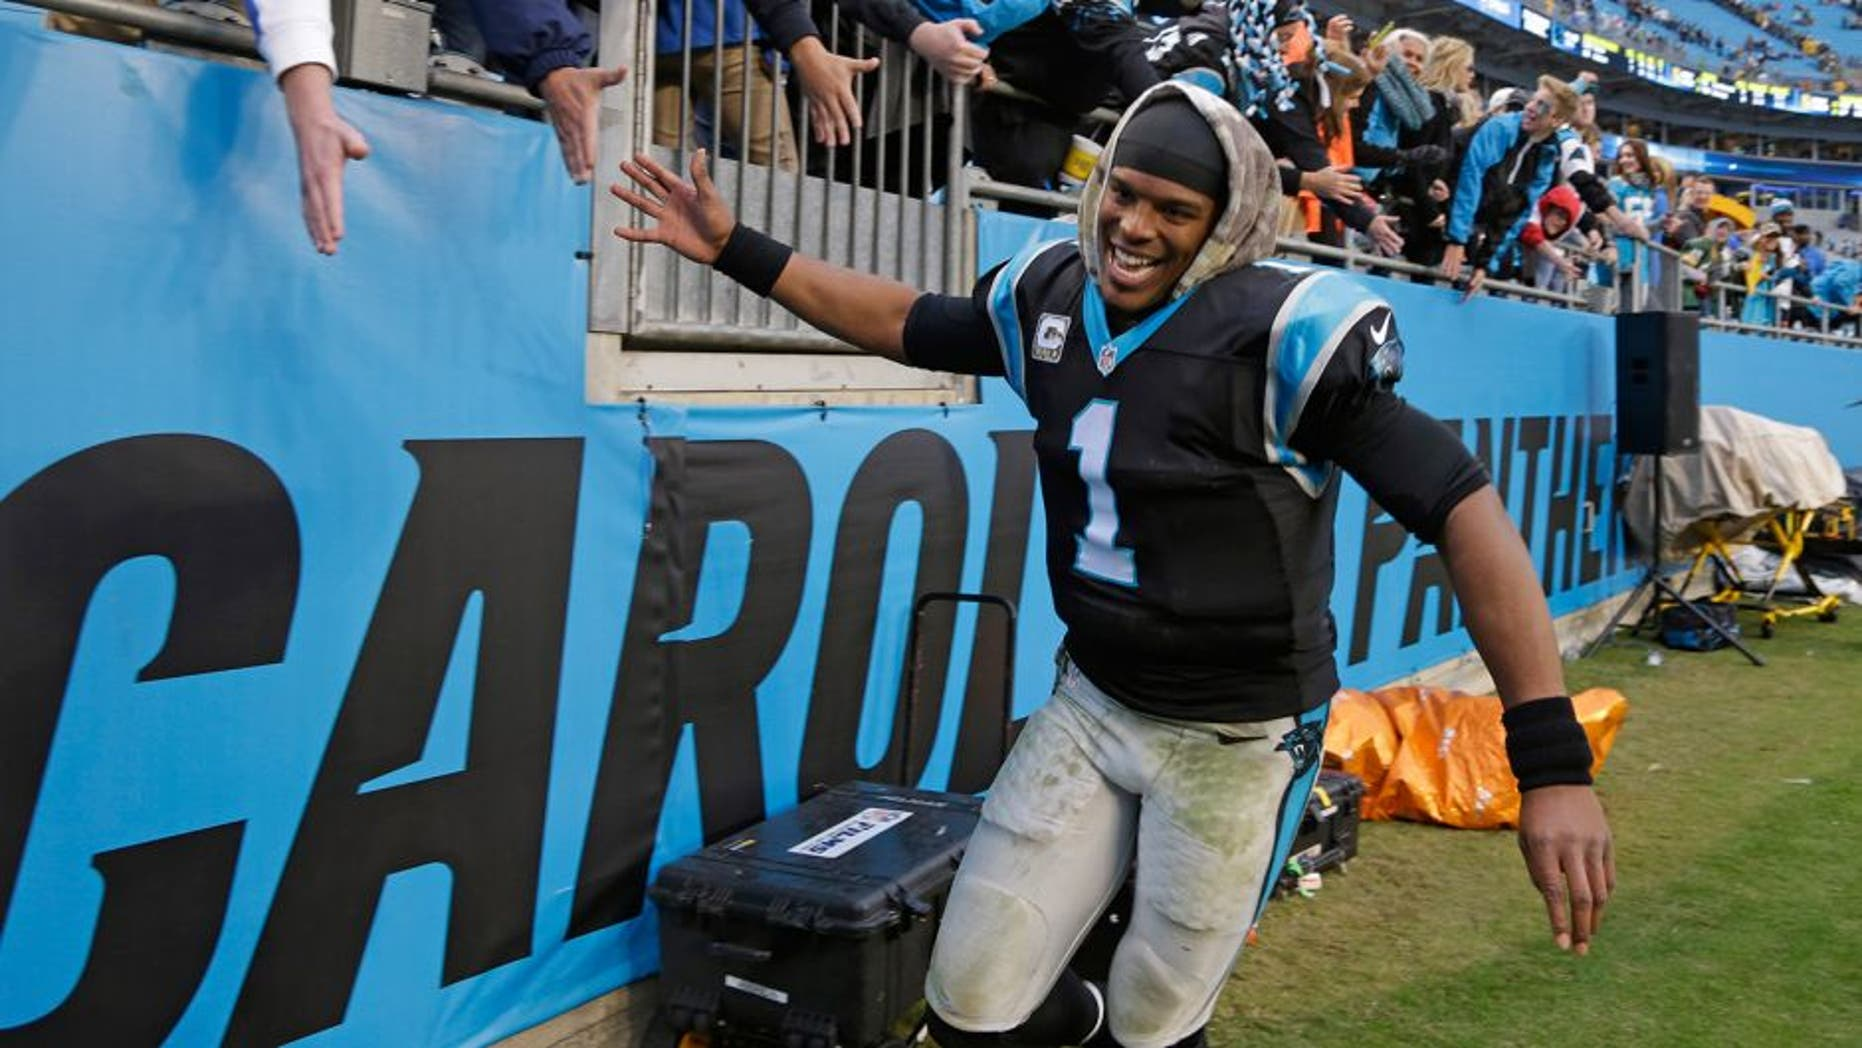 Carolina Panthers' Cam Newton (1) celebrates with fans after an NFL football game against the Green Bay Packers in Charlotte, N.C., Sunday, Nov. 8, 2015. The Panthers won 37-29. (AP Photo/Bob Leverone)